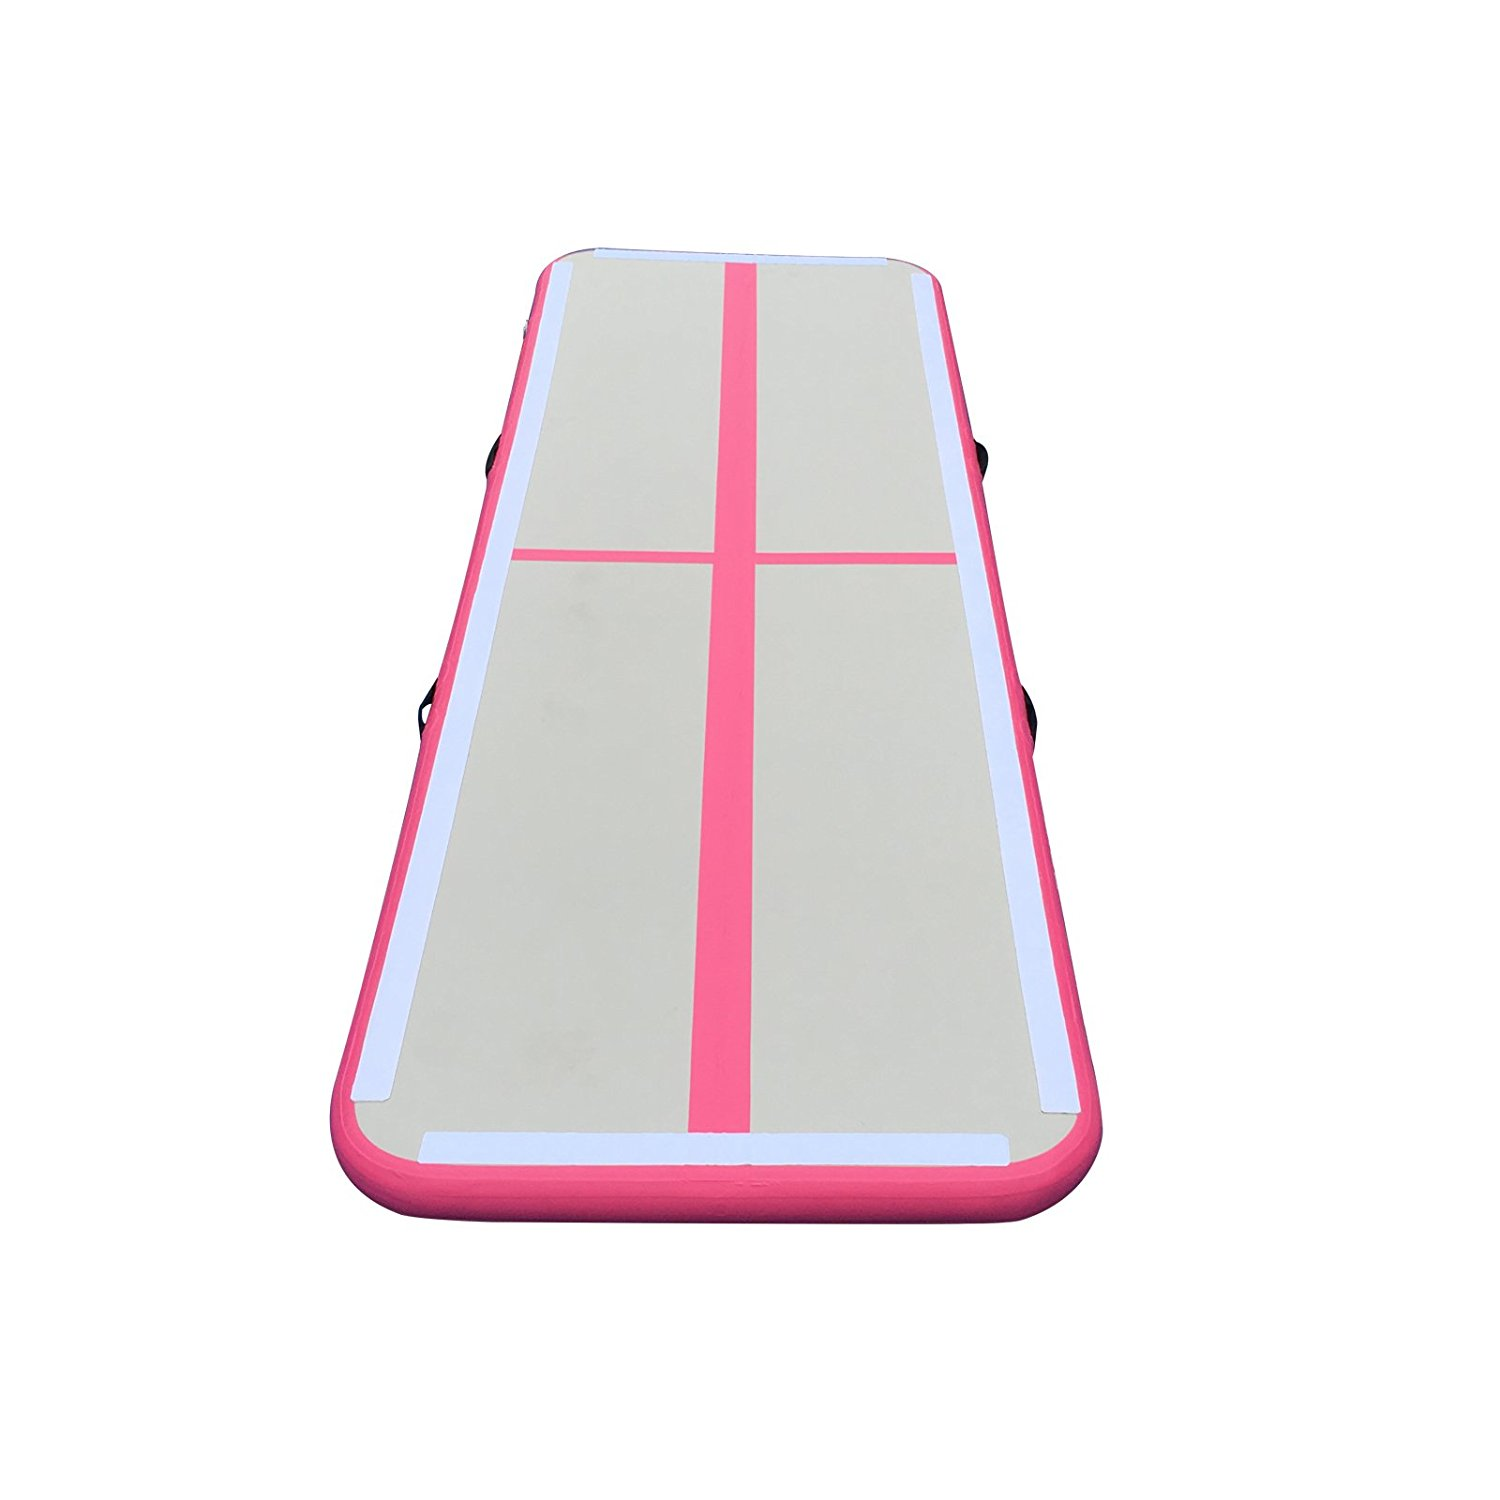 Inflatable Gymnastics Tumbling Mat Inflatable Air Track Home Air Floor GYM Mat Red by BRIS